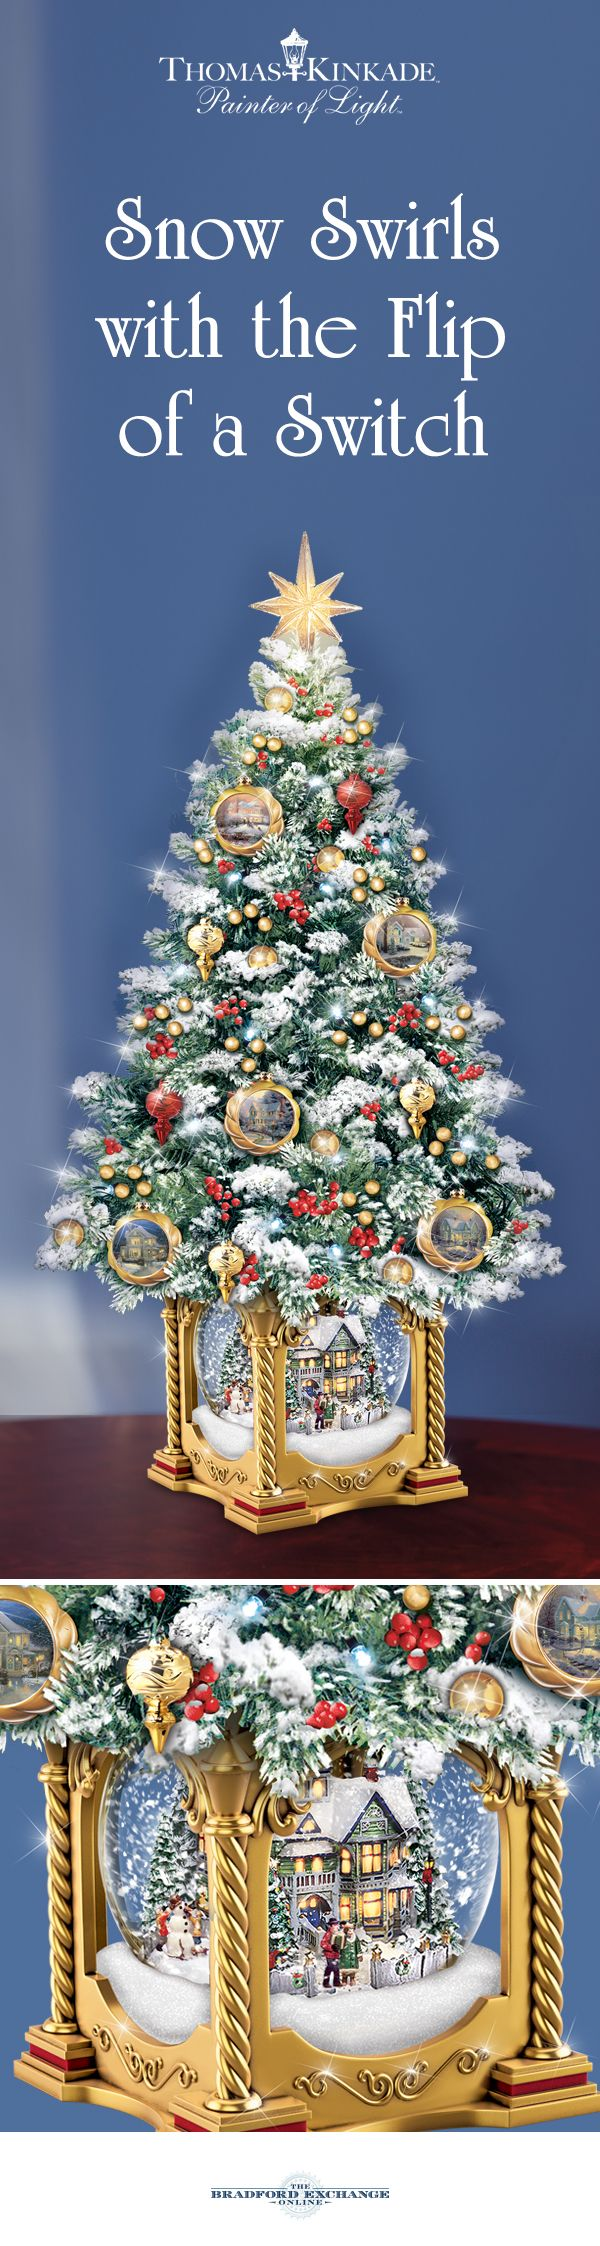 Thomas kinkade o holy night christmas stocking - Brighten Your Holiday Home With This First Ever Thomas Kinkade Snowglobe Tree It Features